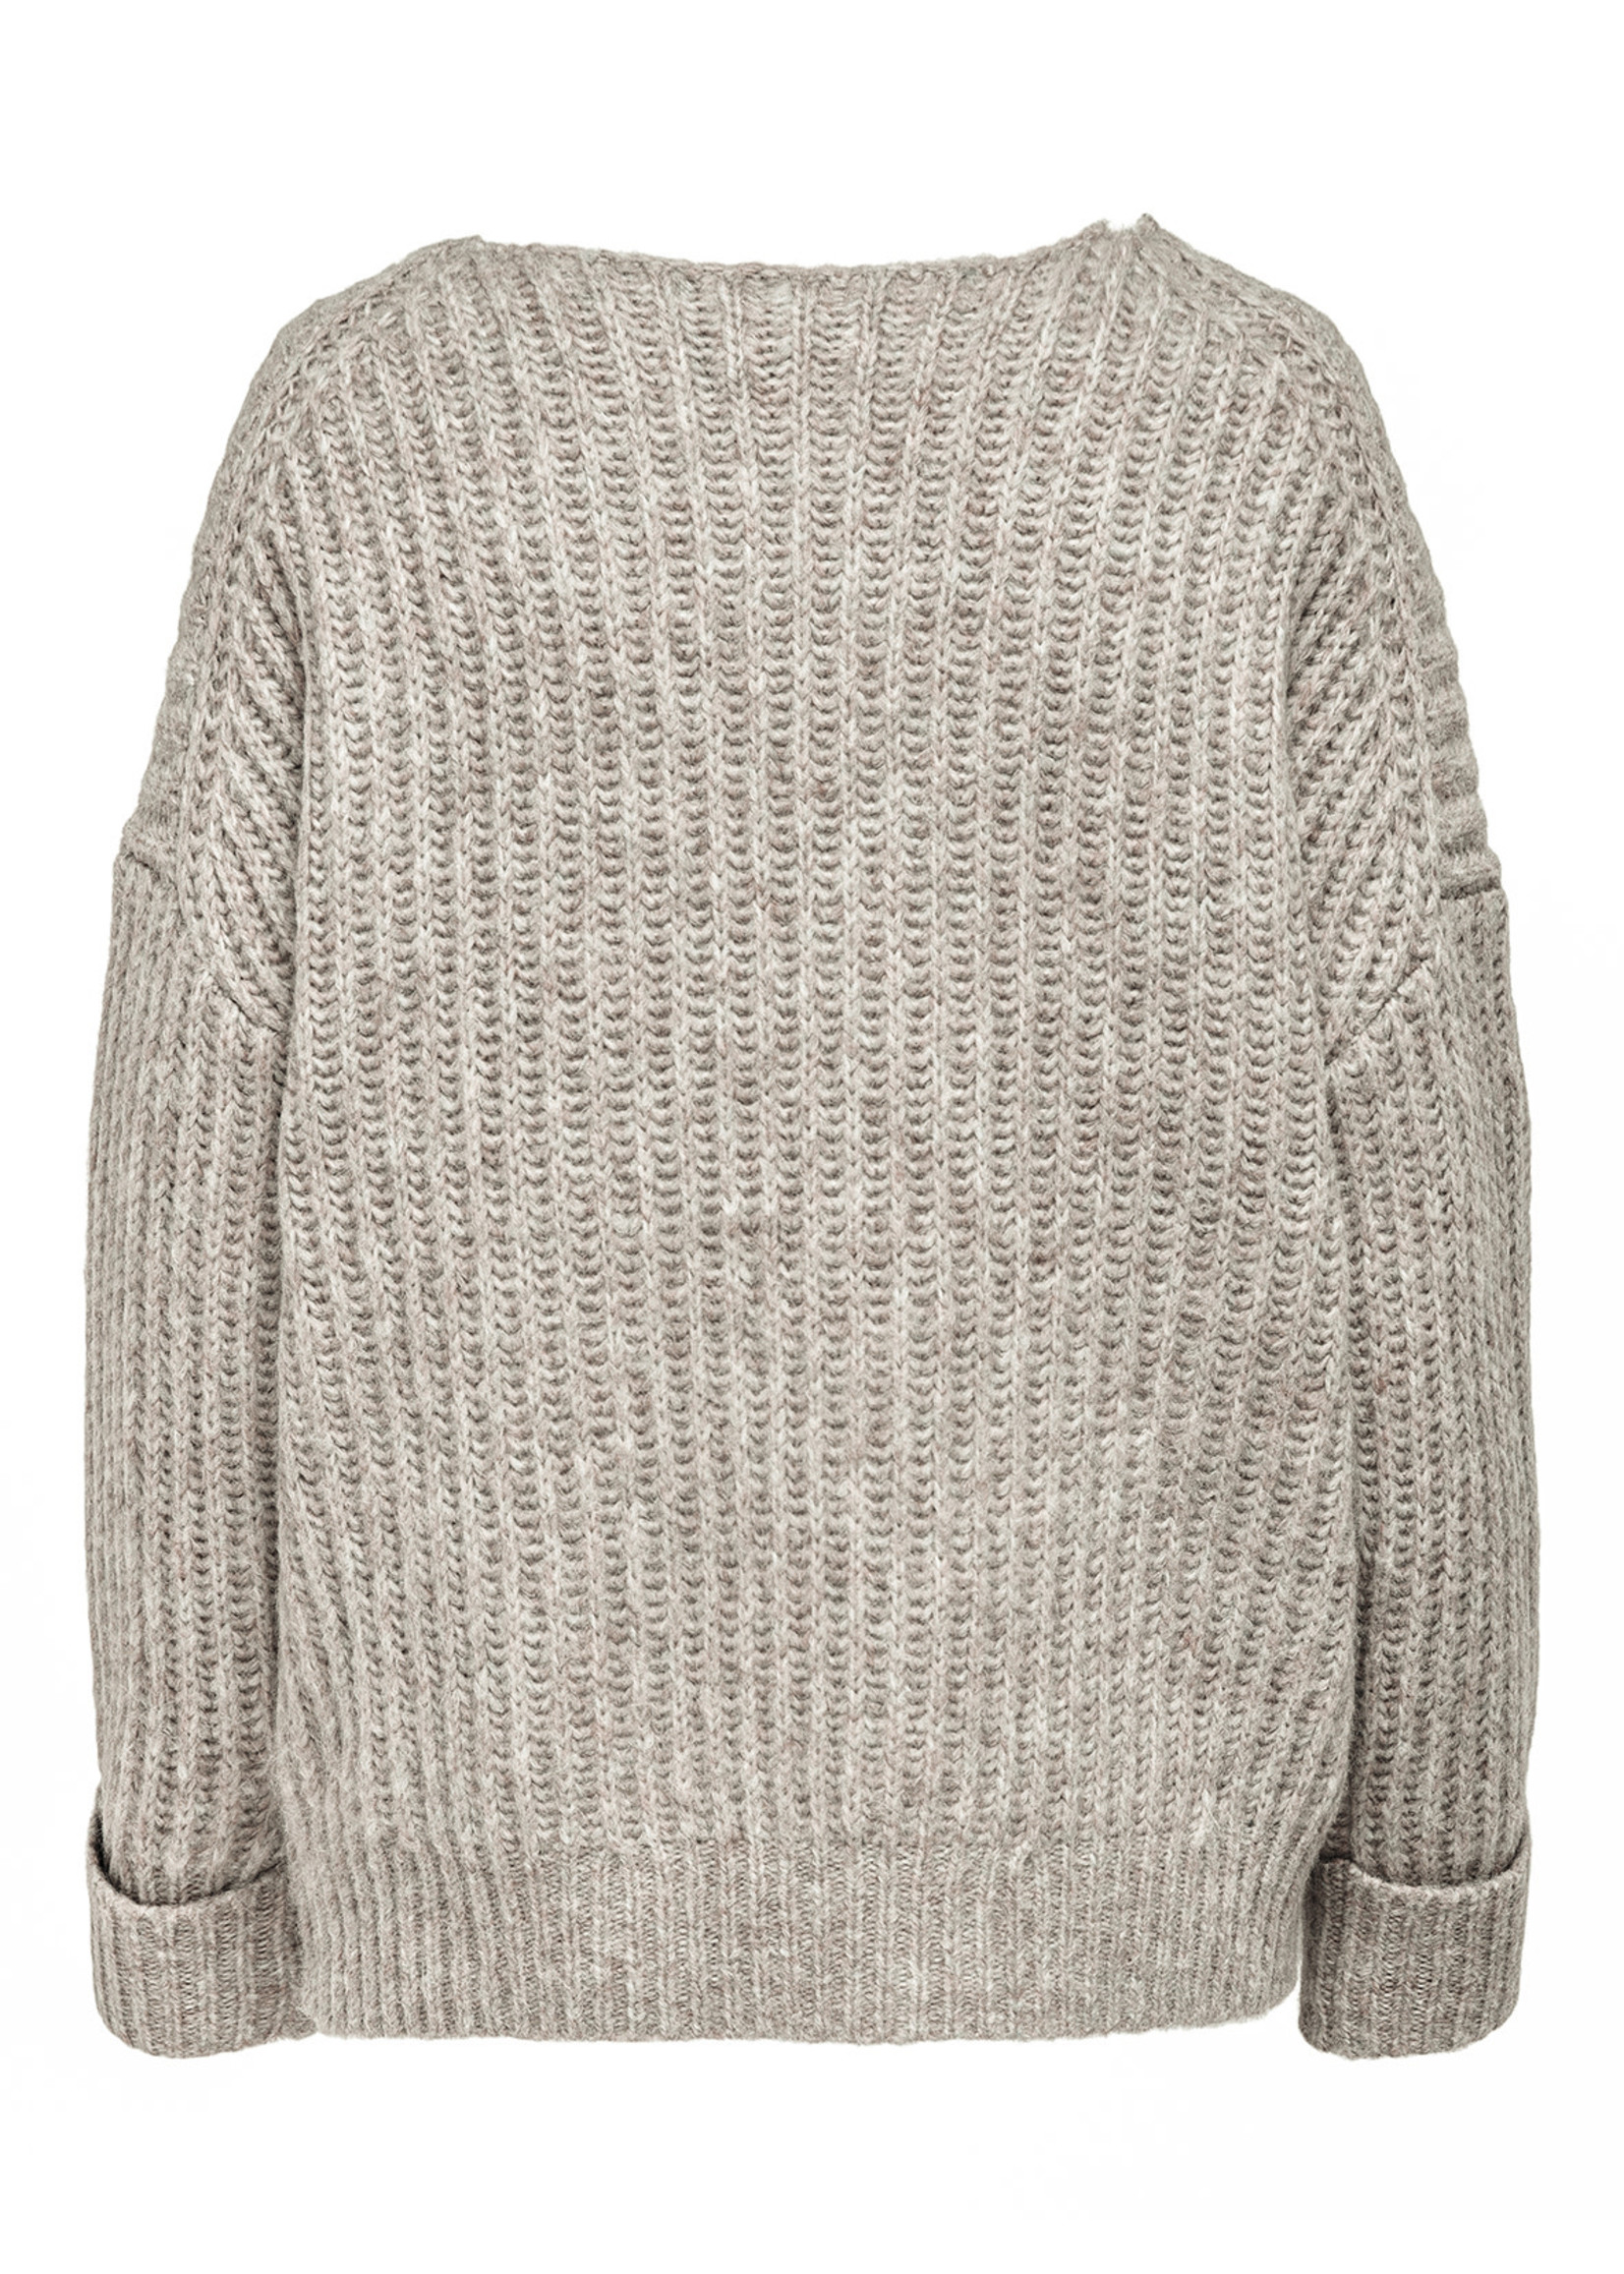 ONLY SCALA L/S V-NECK PULLOVER KNT pumice stone